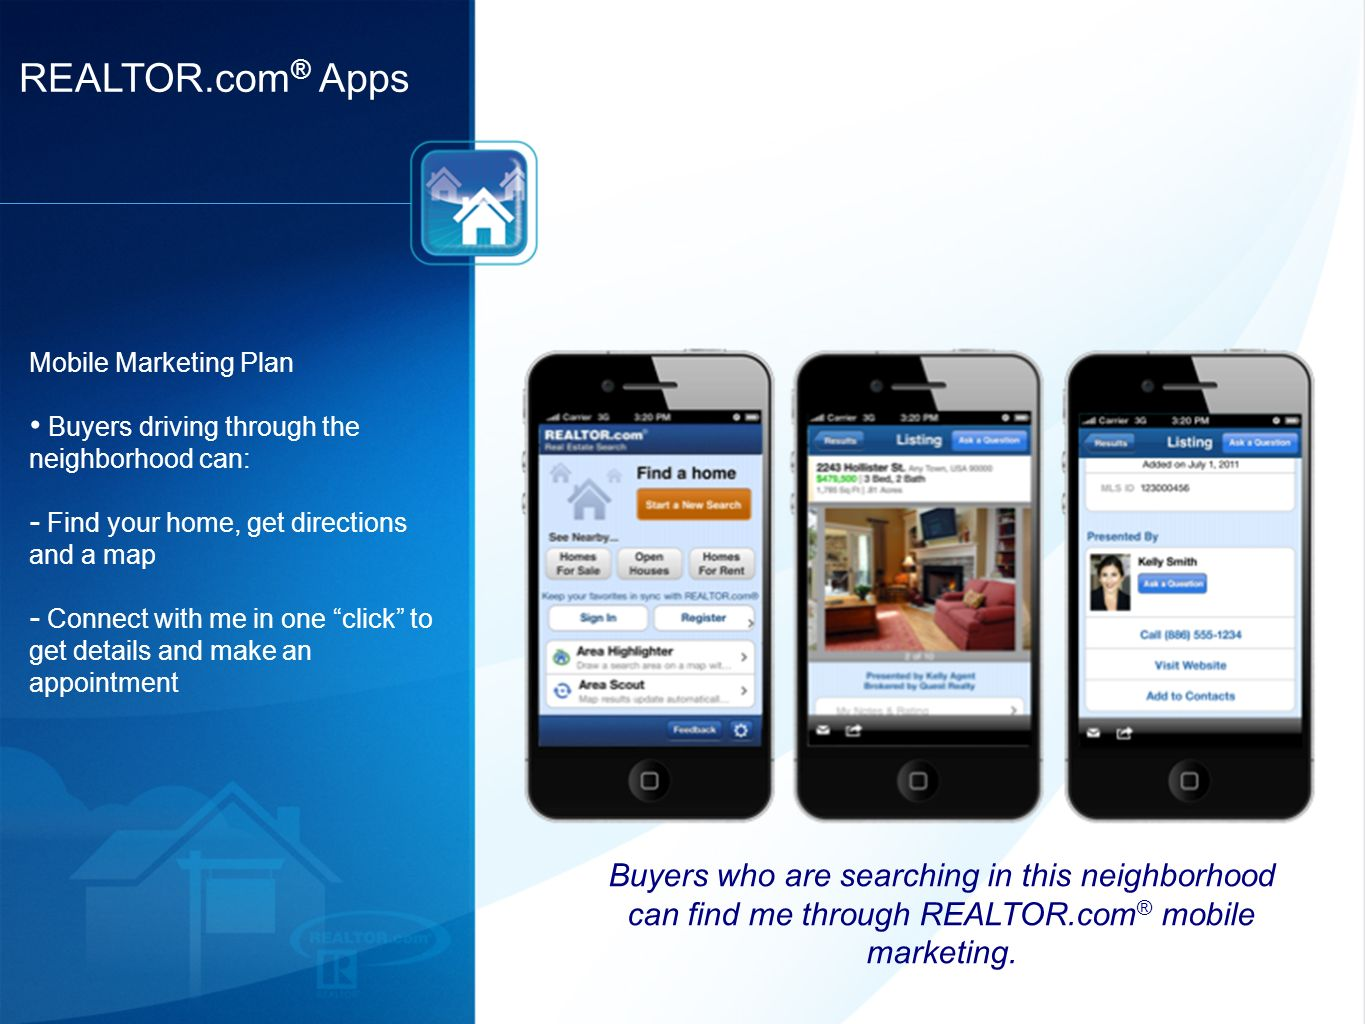 REALTOR.com ® Apps Mobile Marketing Plan Buyers driving through the neighborhood can: - Find your home, get directions and a map - Connect with me in one click to get details and make an appointment Buyers who are searching in this neighborhood can find me through REALTOR.com ® mobile marketing.